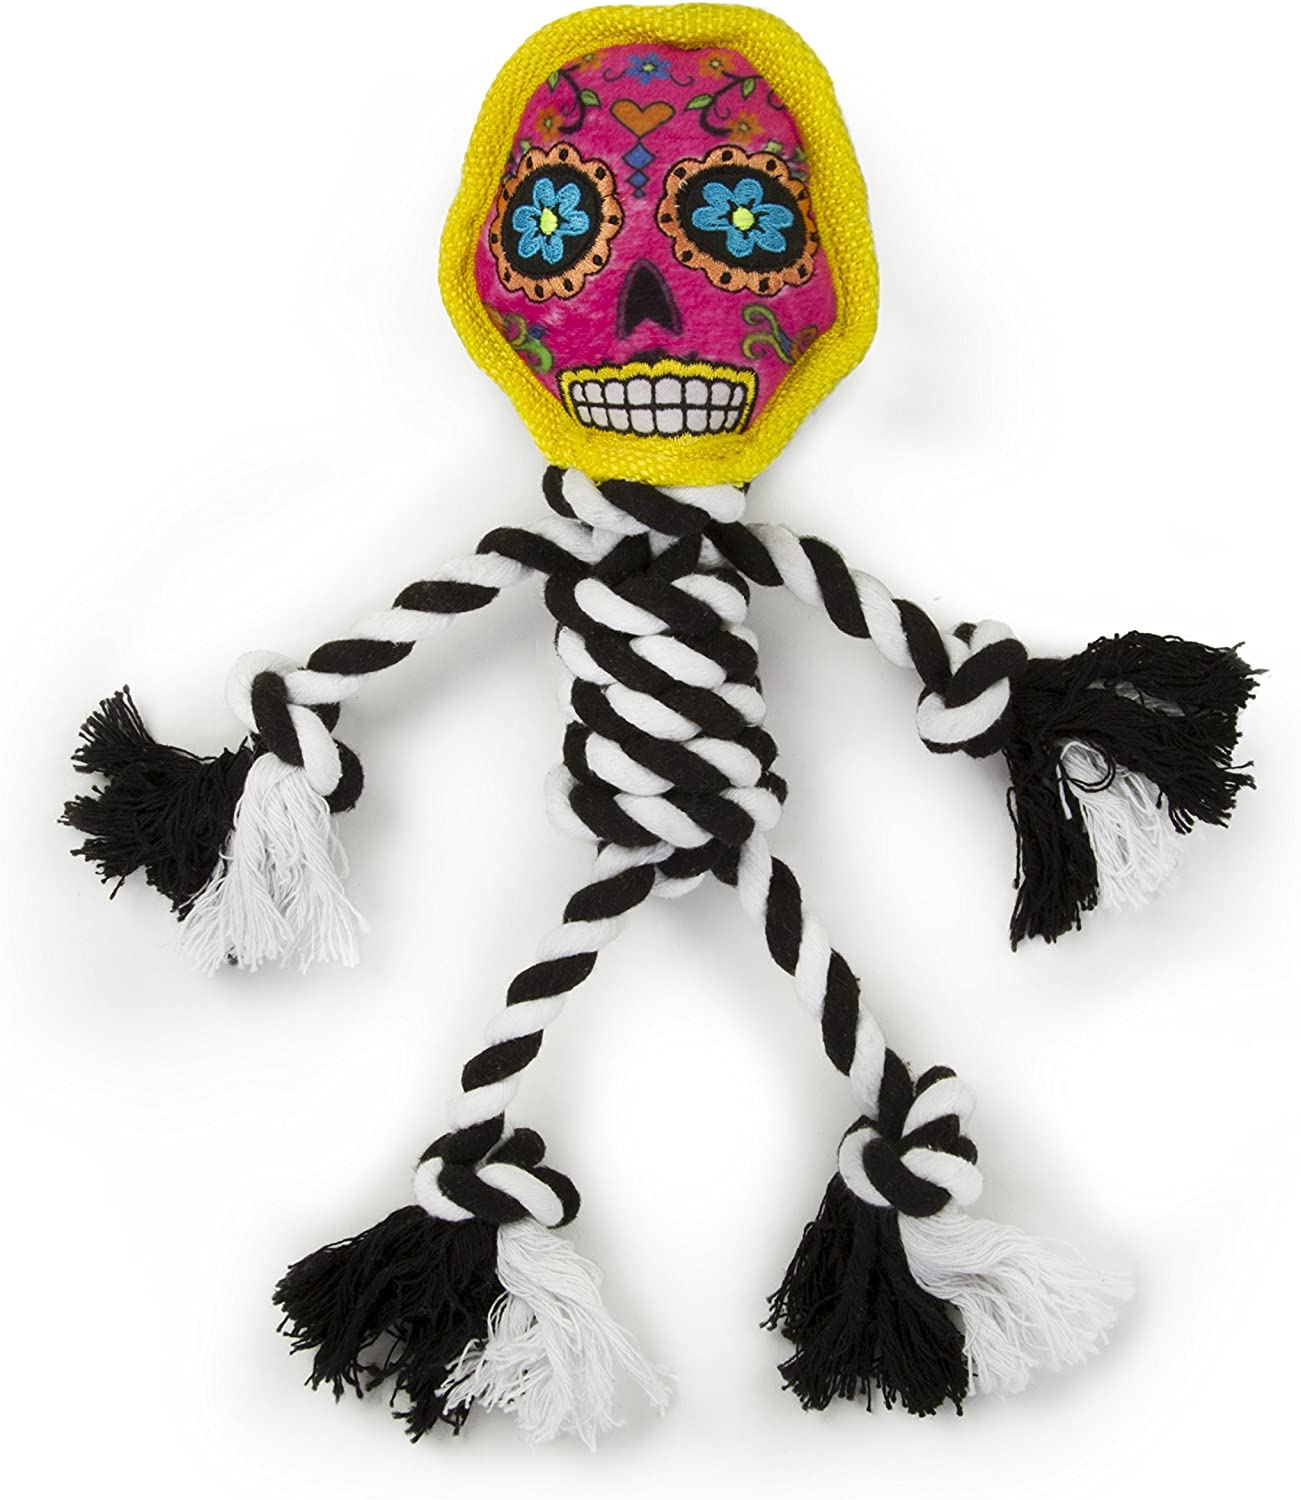 Moonmoon goDog Sugar Skulls with Chew Guard Technology Rope